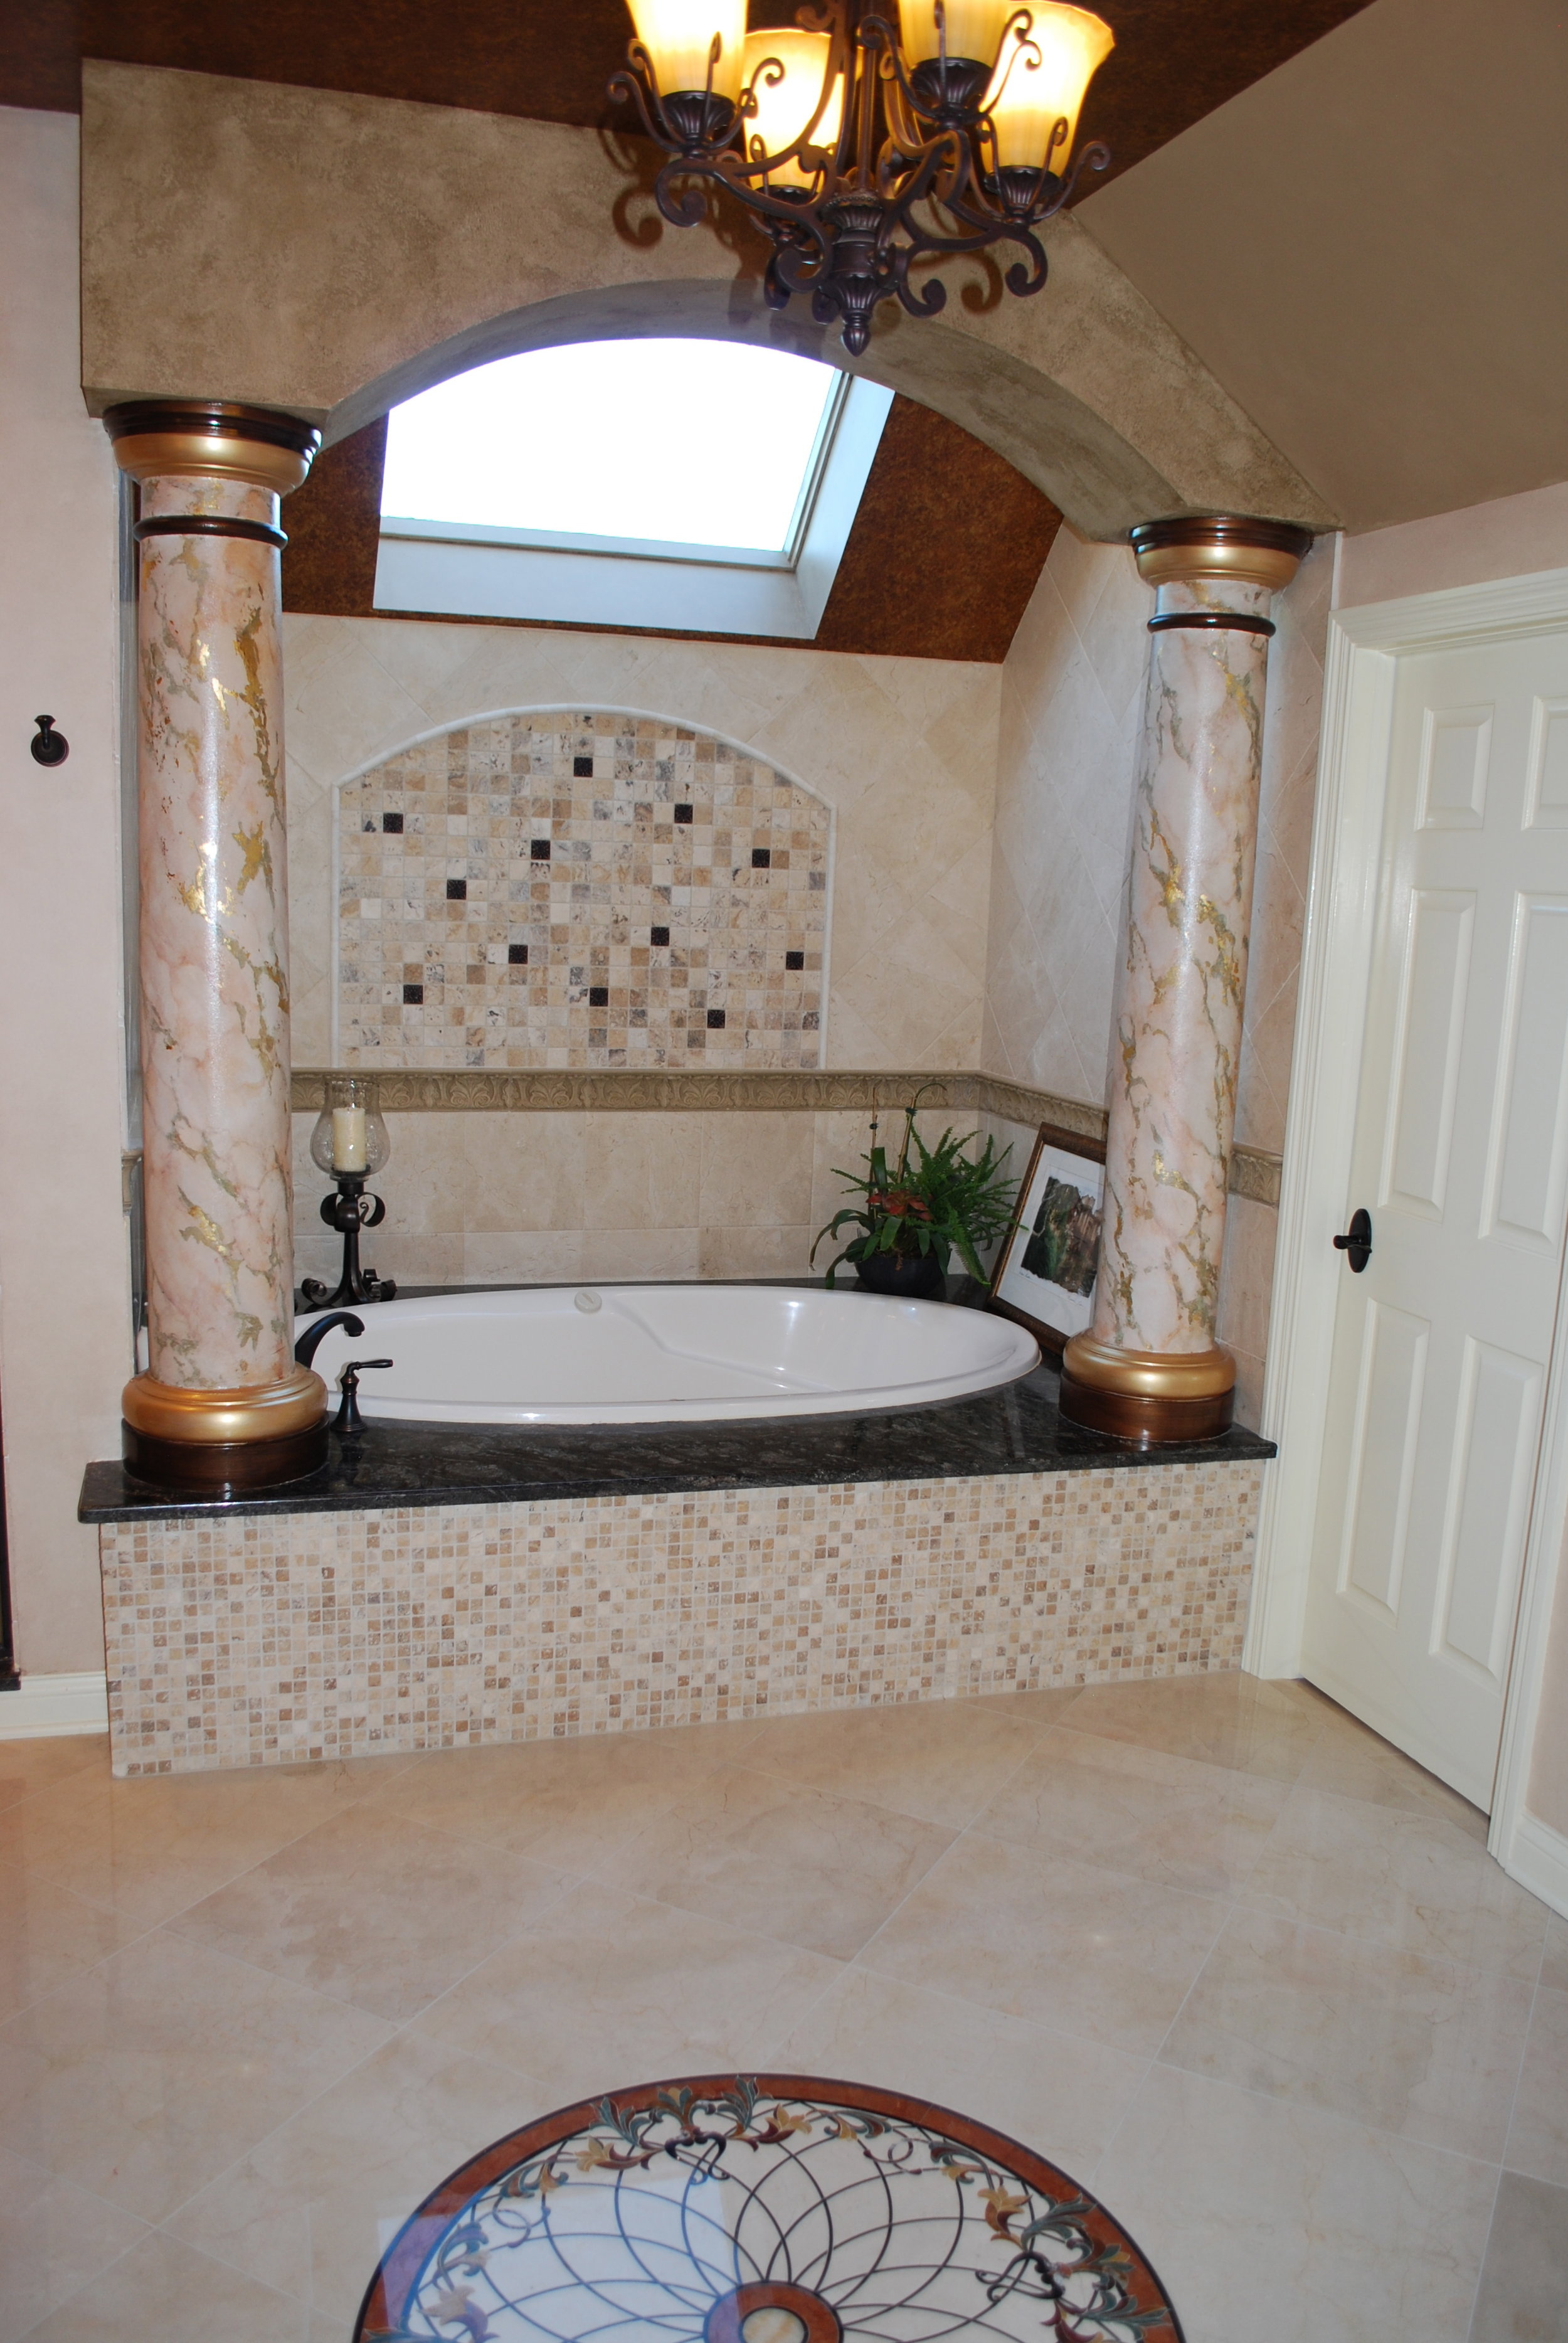 CUSTOM TUB DECK IN ST. CHARLES OVER THE TOP BATH REMODEL